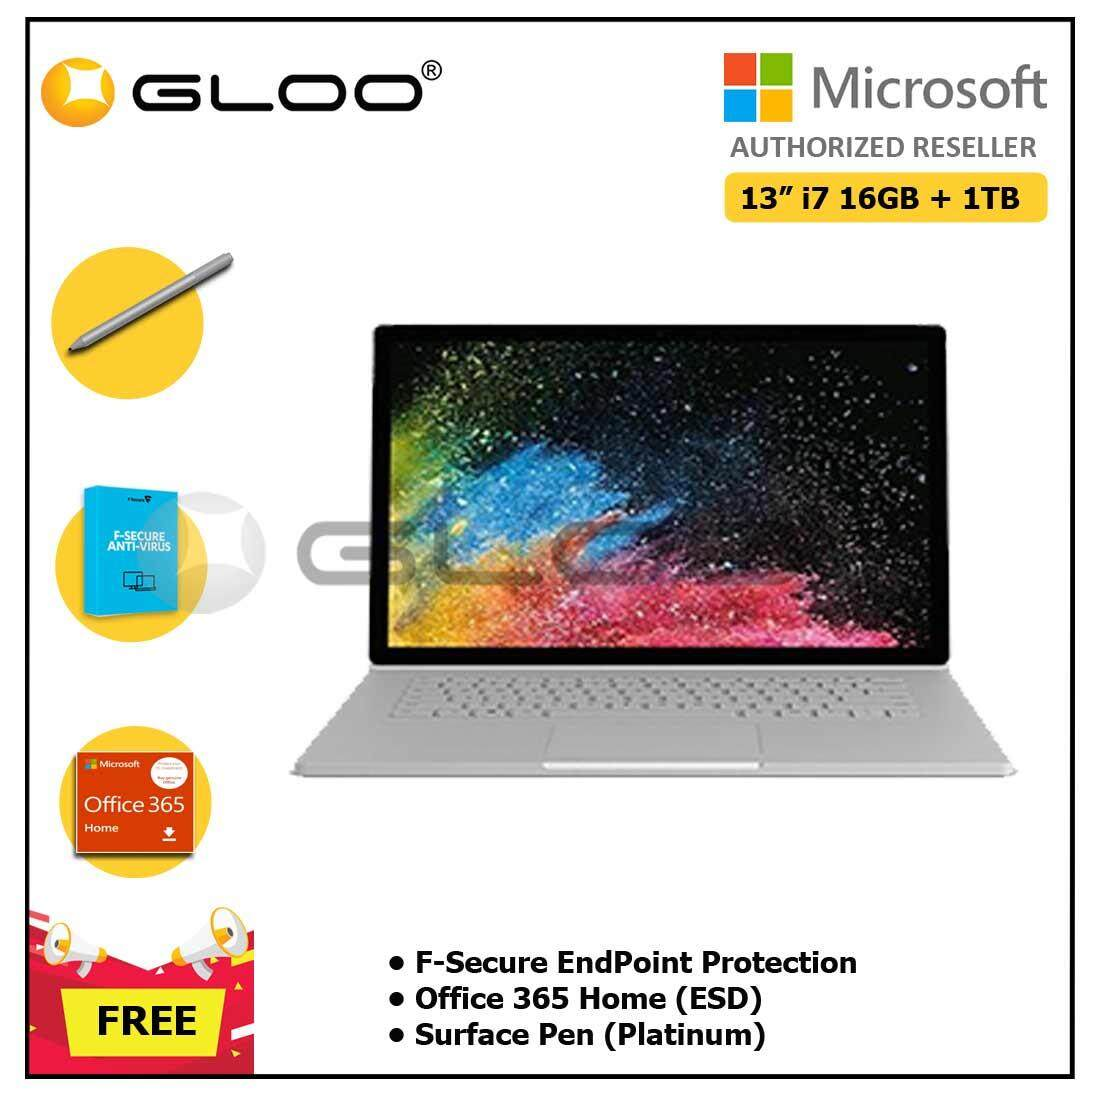 """Microsoft Surface Book 2 13"""" Core i7/16GB RAM - 1TB + F-Secure EndPoint Protection + Office 365 Home ESD + Pen Platinum"""